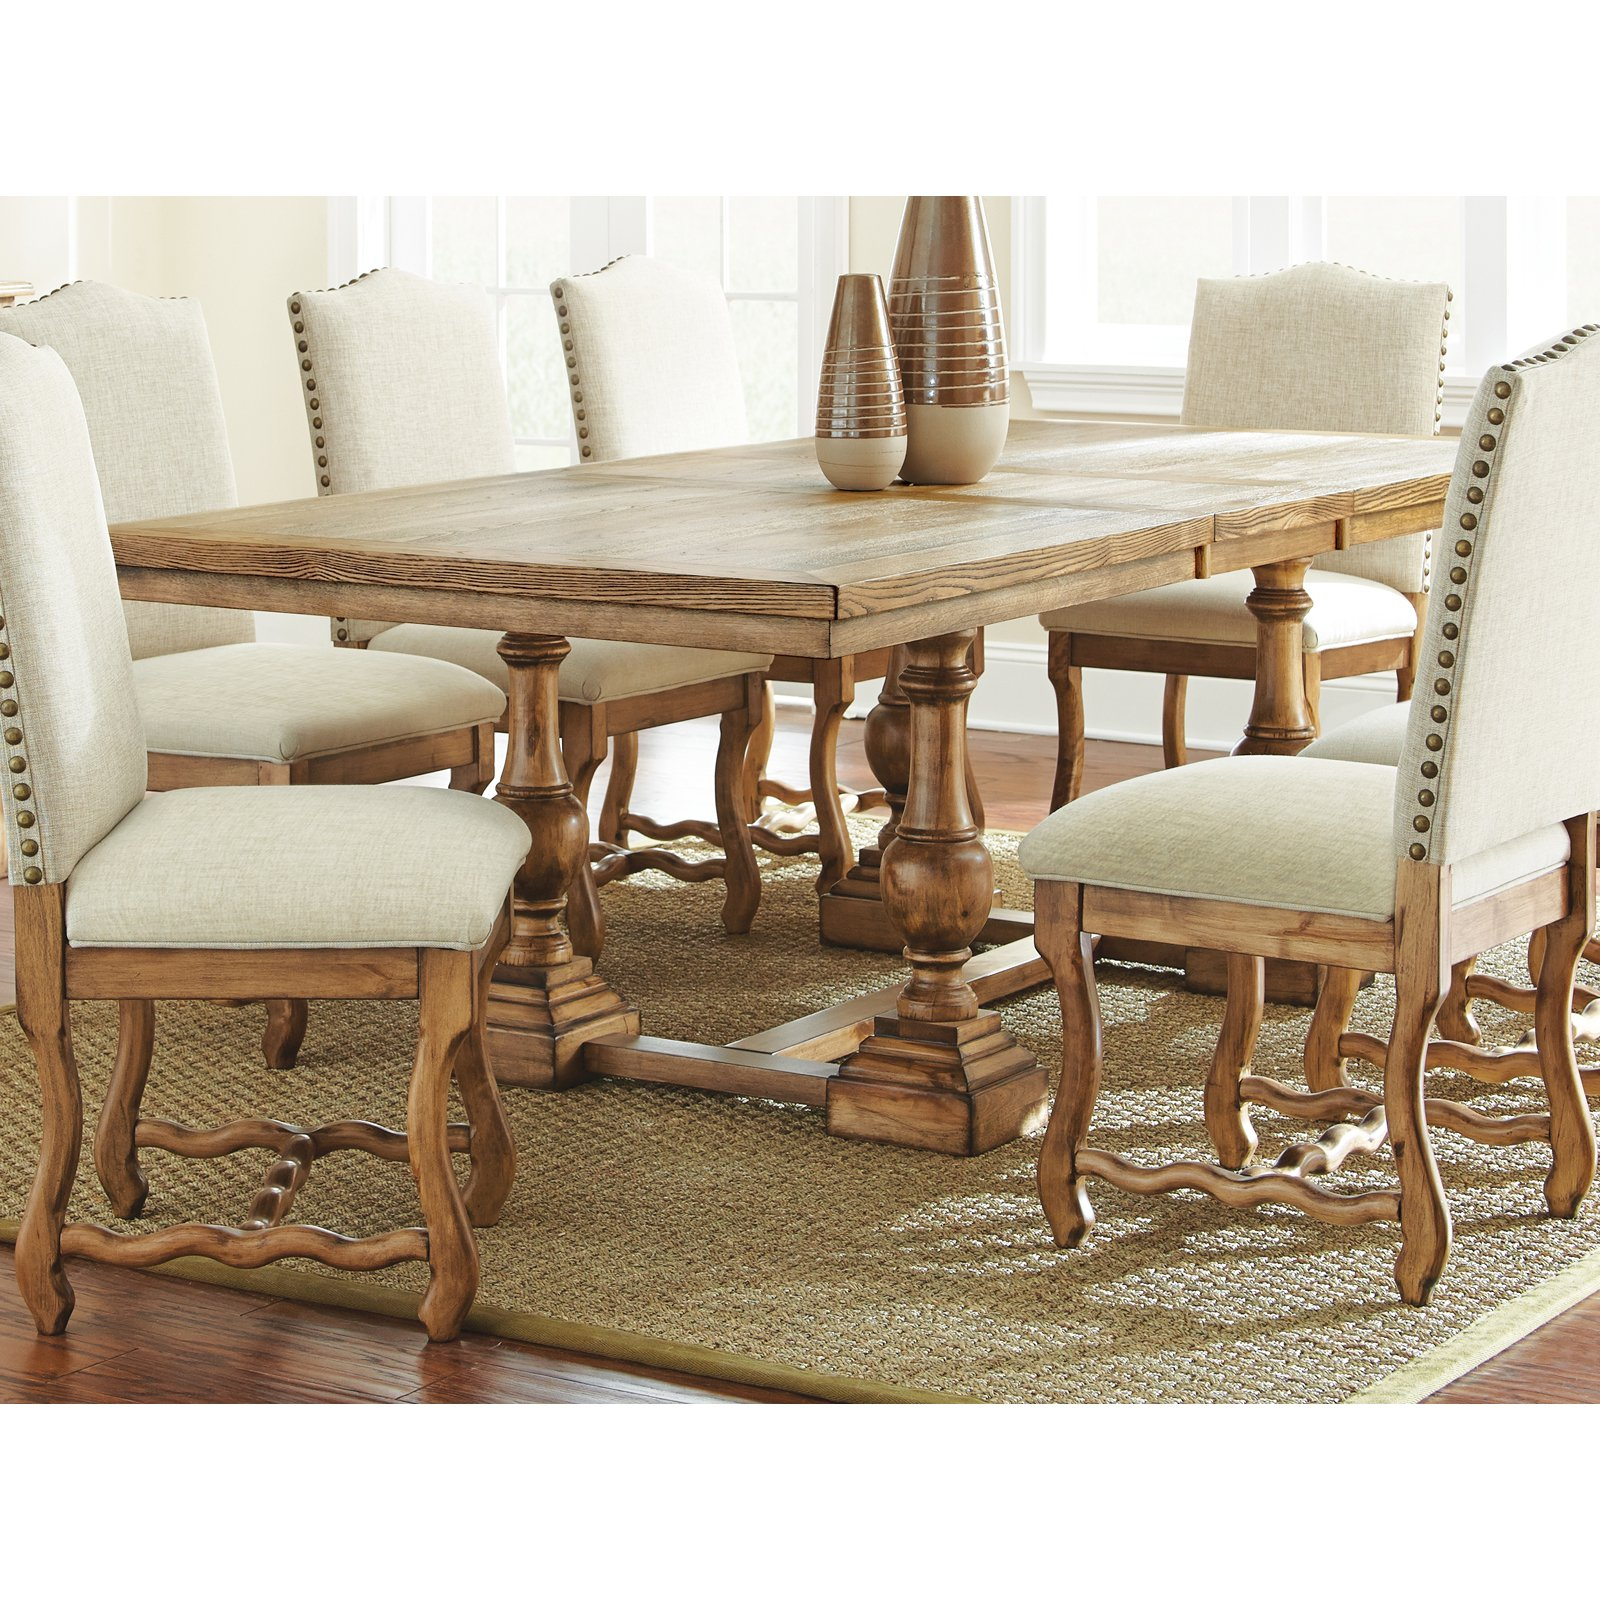 Steve Silver Plymouth Dining Table - Oiled Oak - Walmart.com